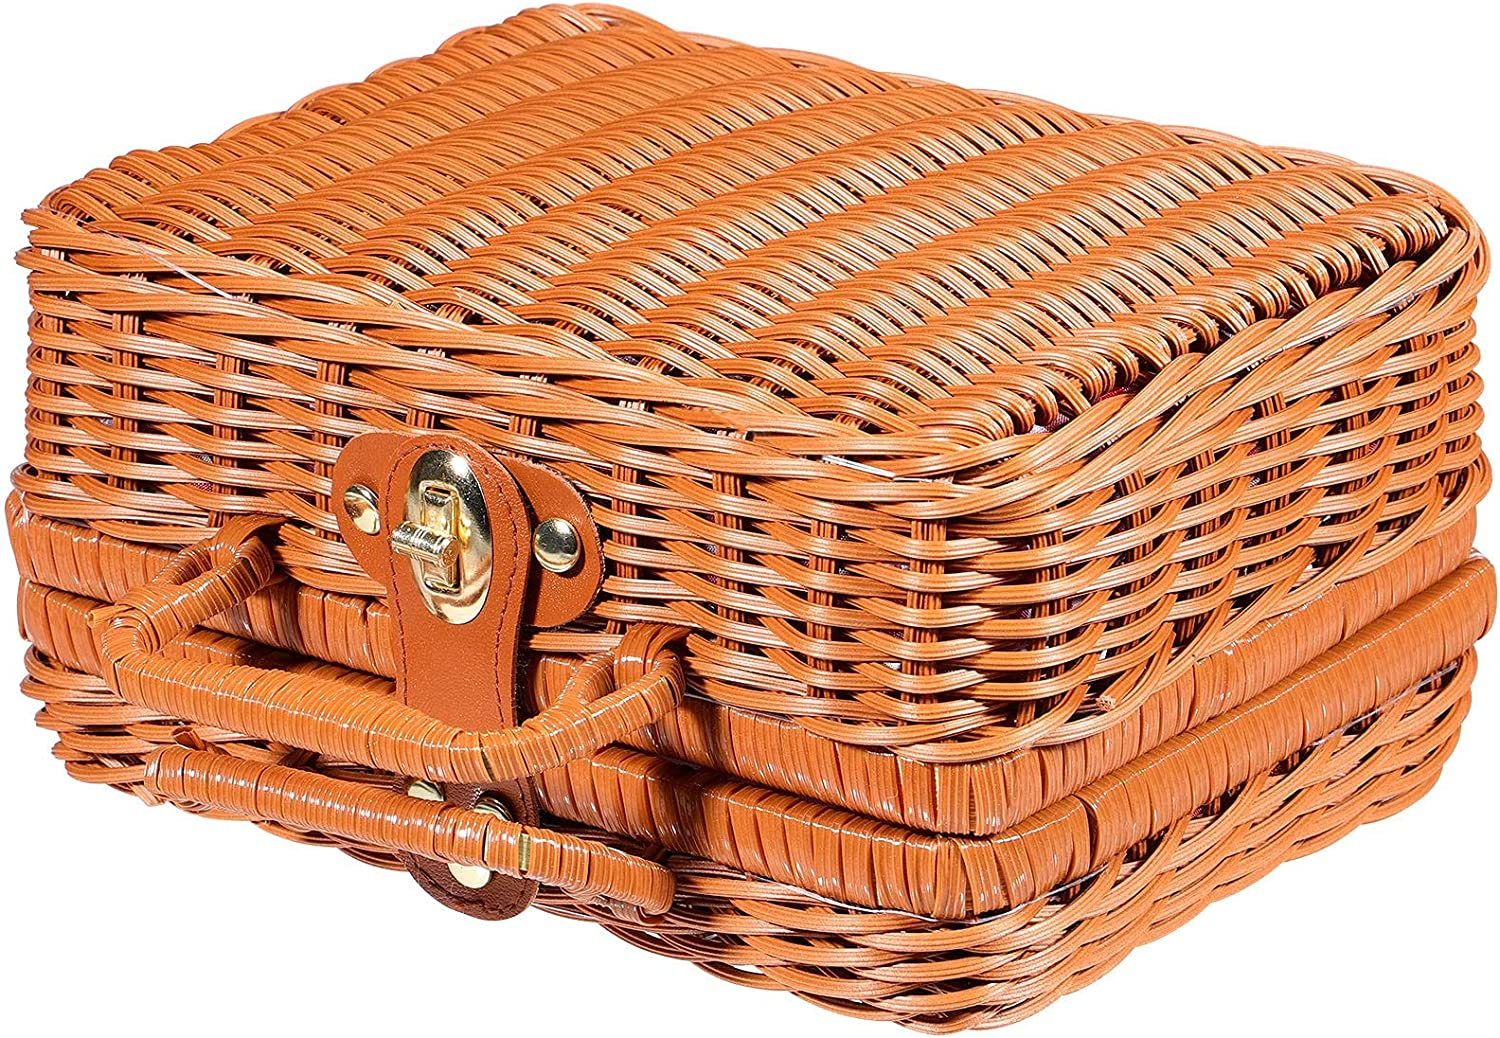 IMIKEYA Small Luxury goods Wicker Picnic Basket Hamper for free Woven Trave